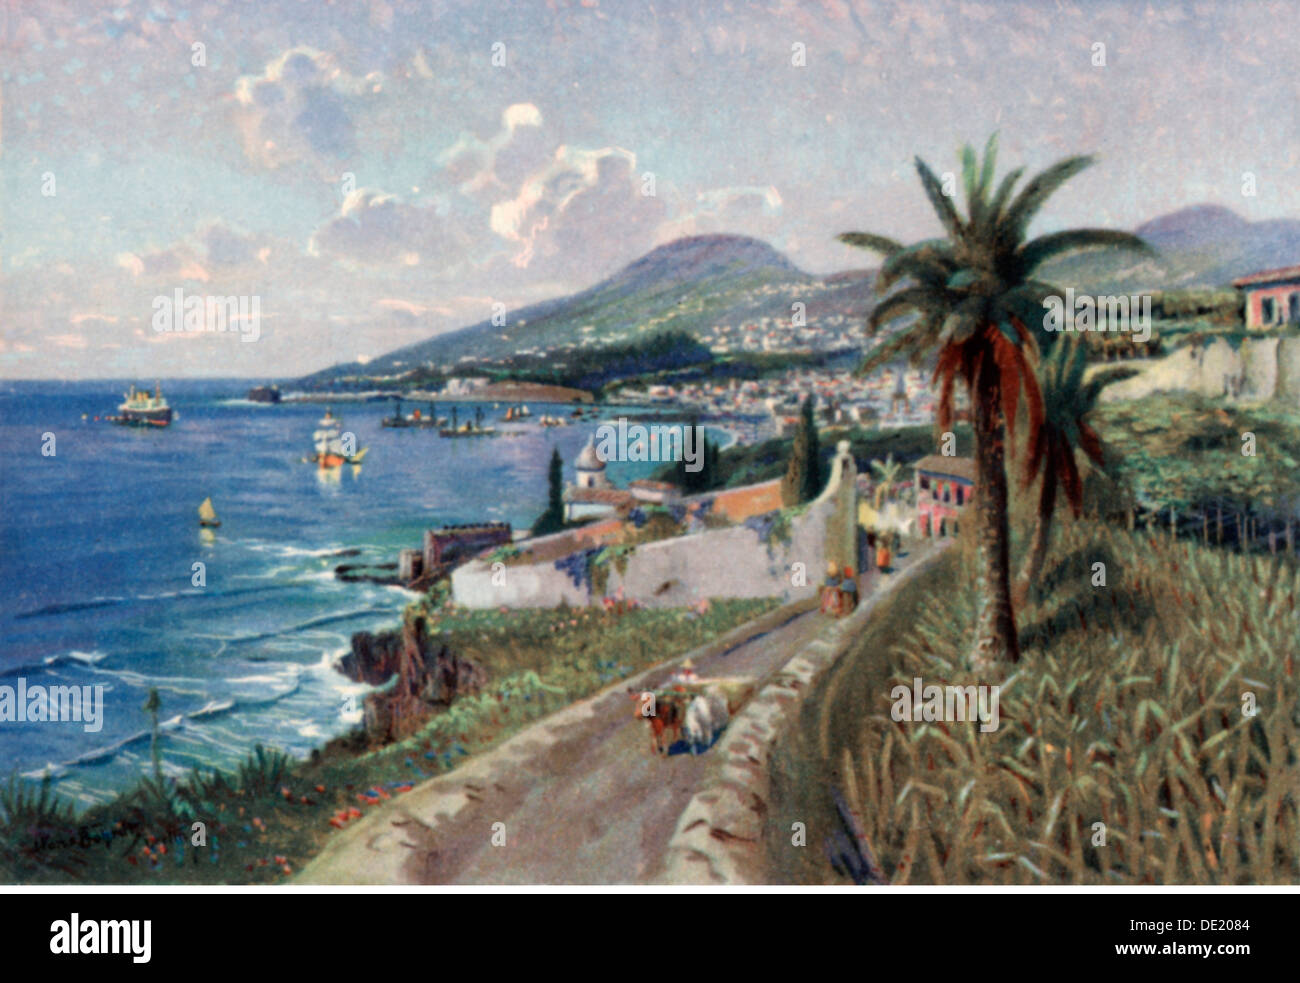 Geografia / viaggi, Portogallo, Isola di Madeira, Funchal, visualizzare l'arte cartolina, 1920s, Additional-Rights-Clearences-NA Immagini Stock